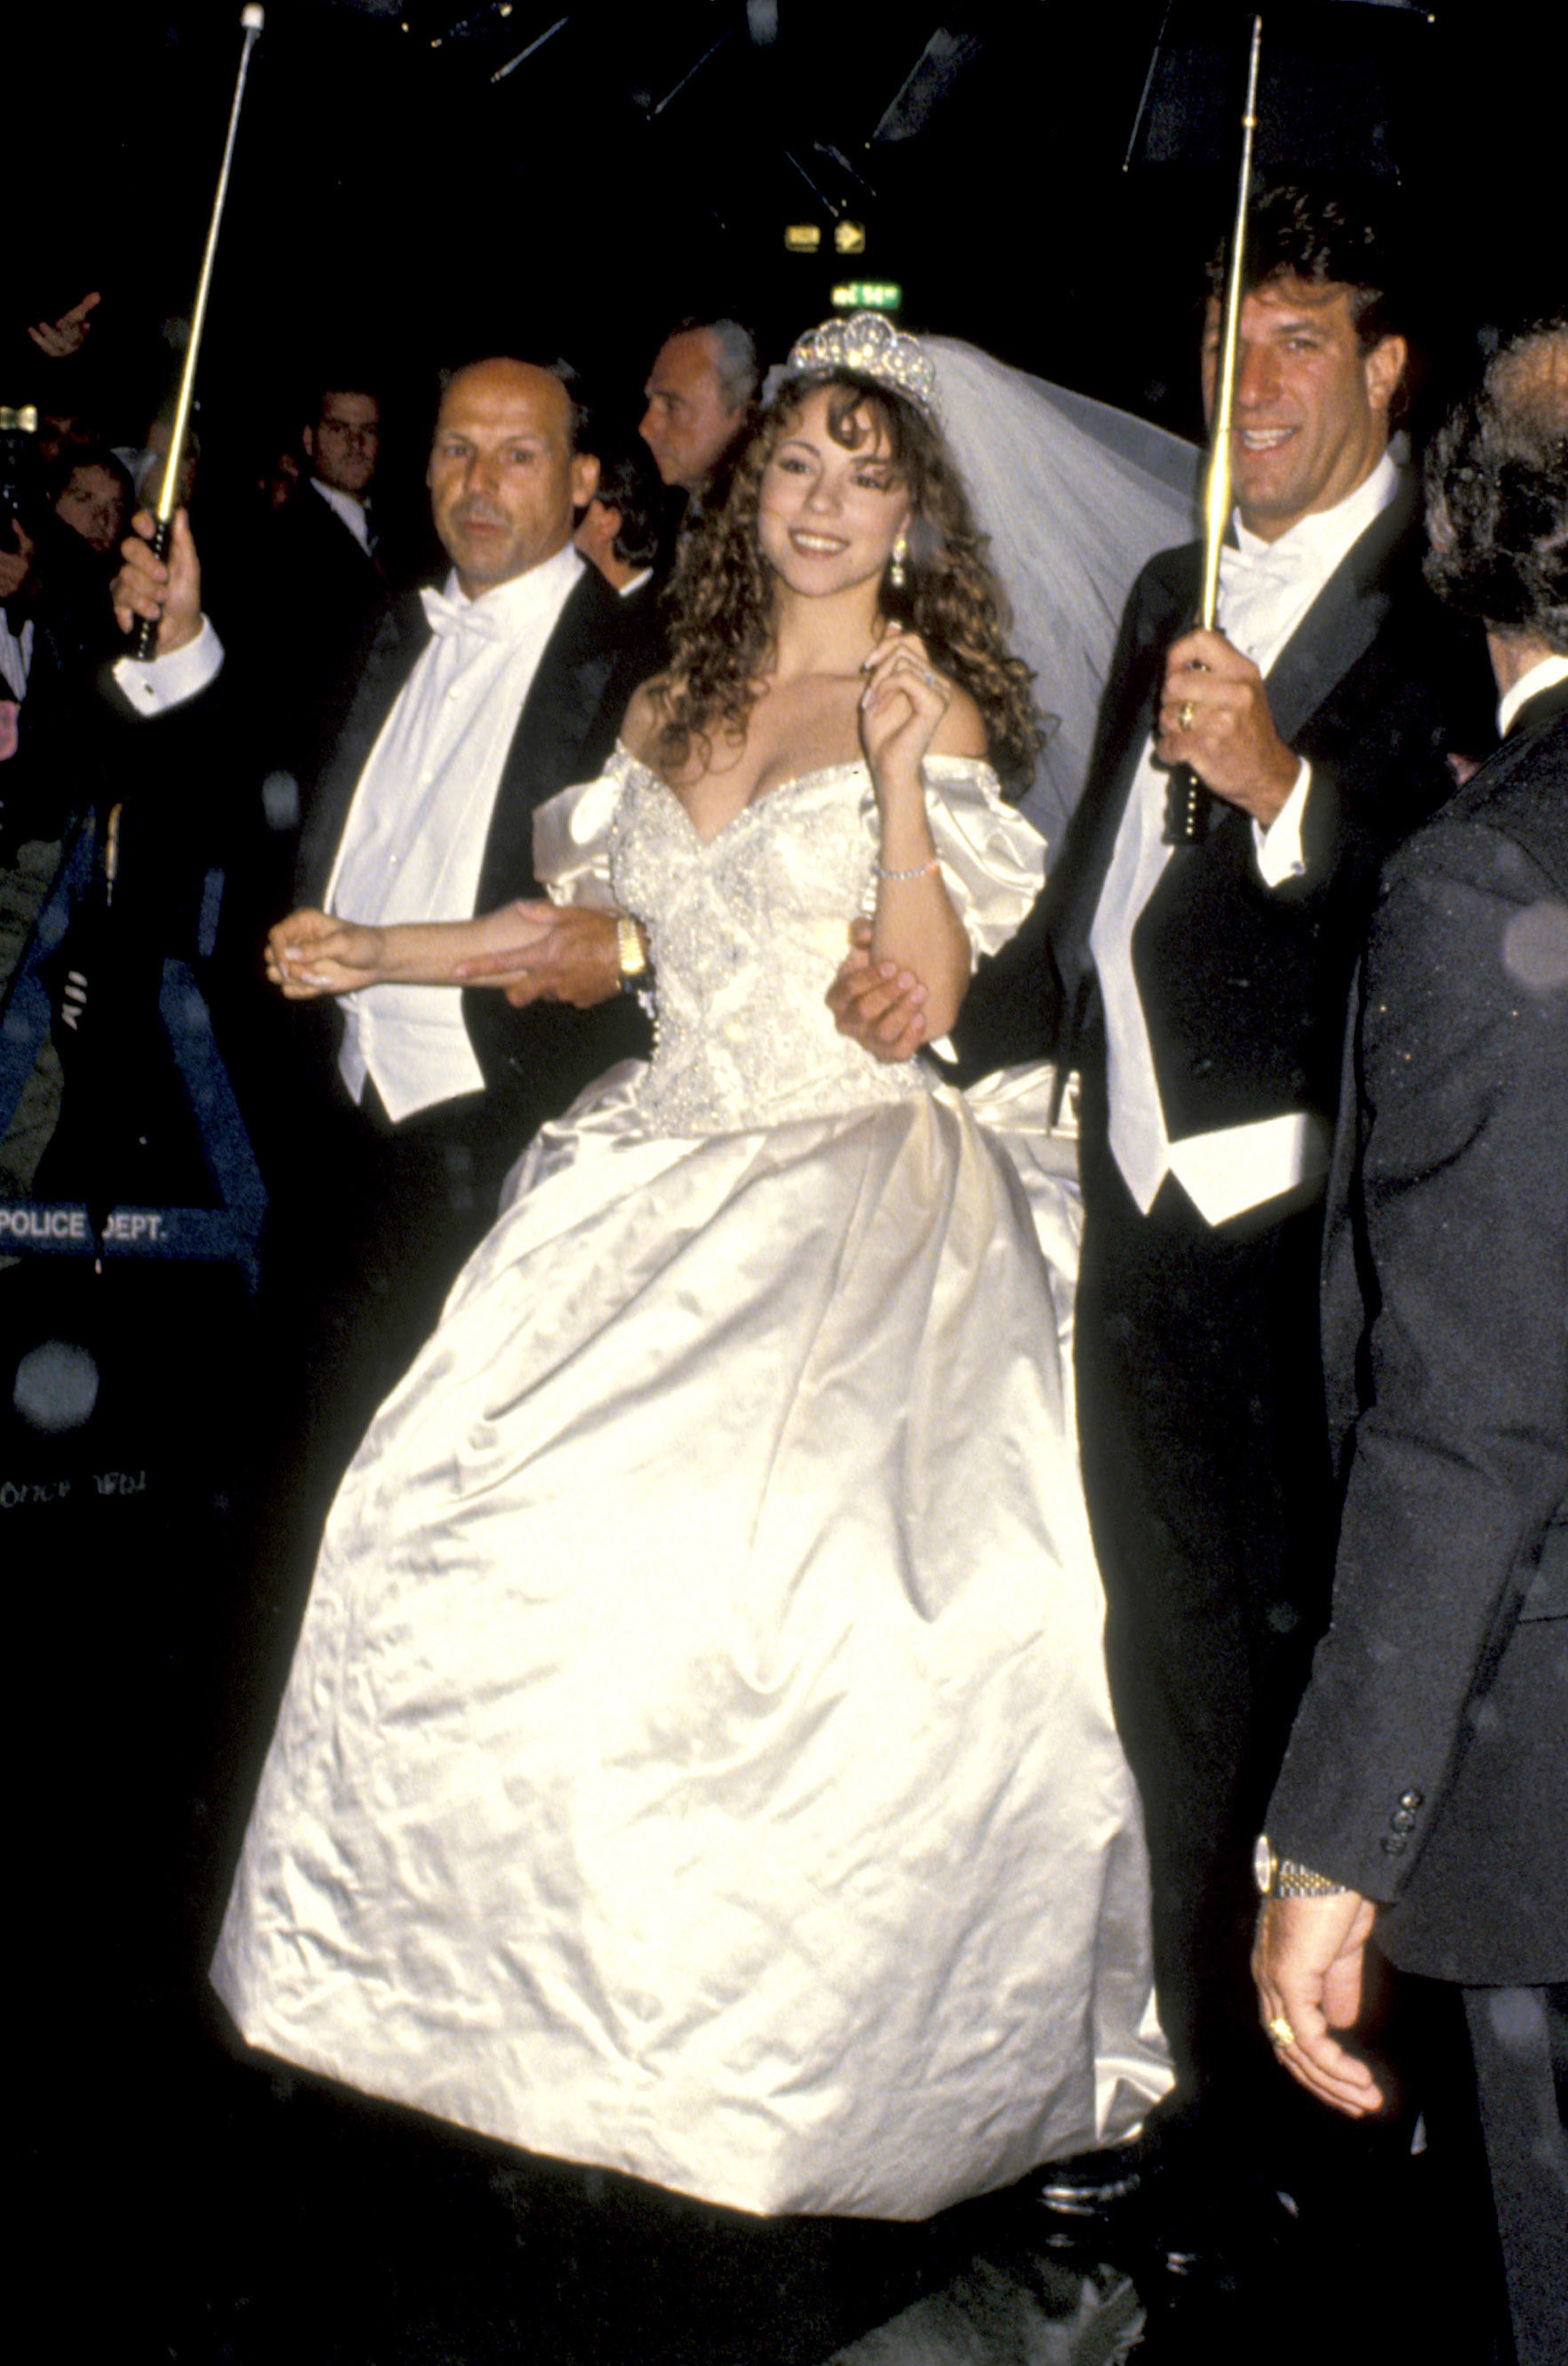 The 16 Most Scandalous Wedding Dresses of All Time - Famous ...